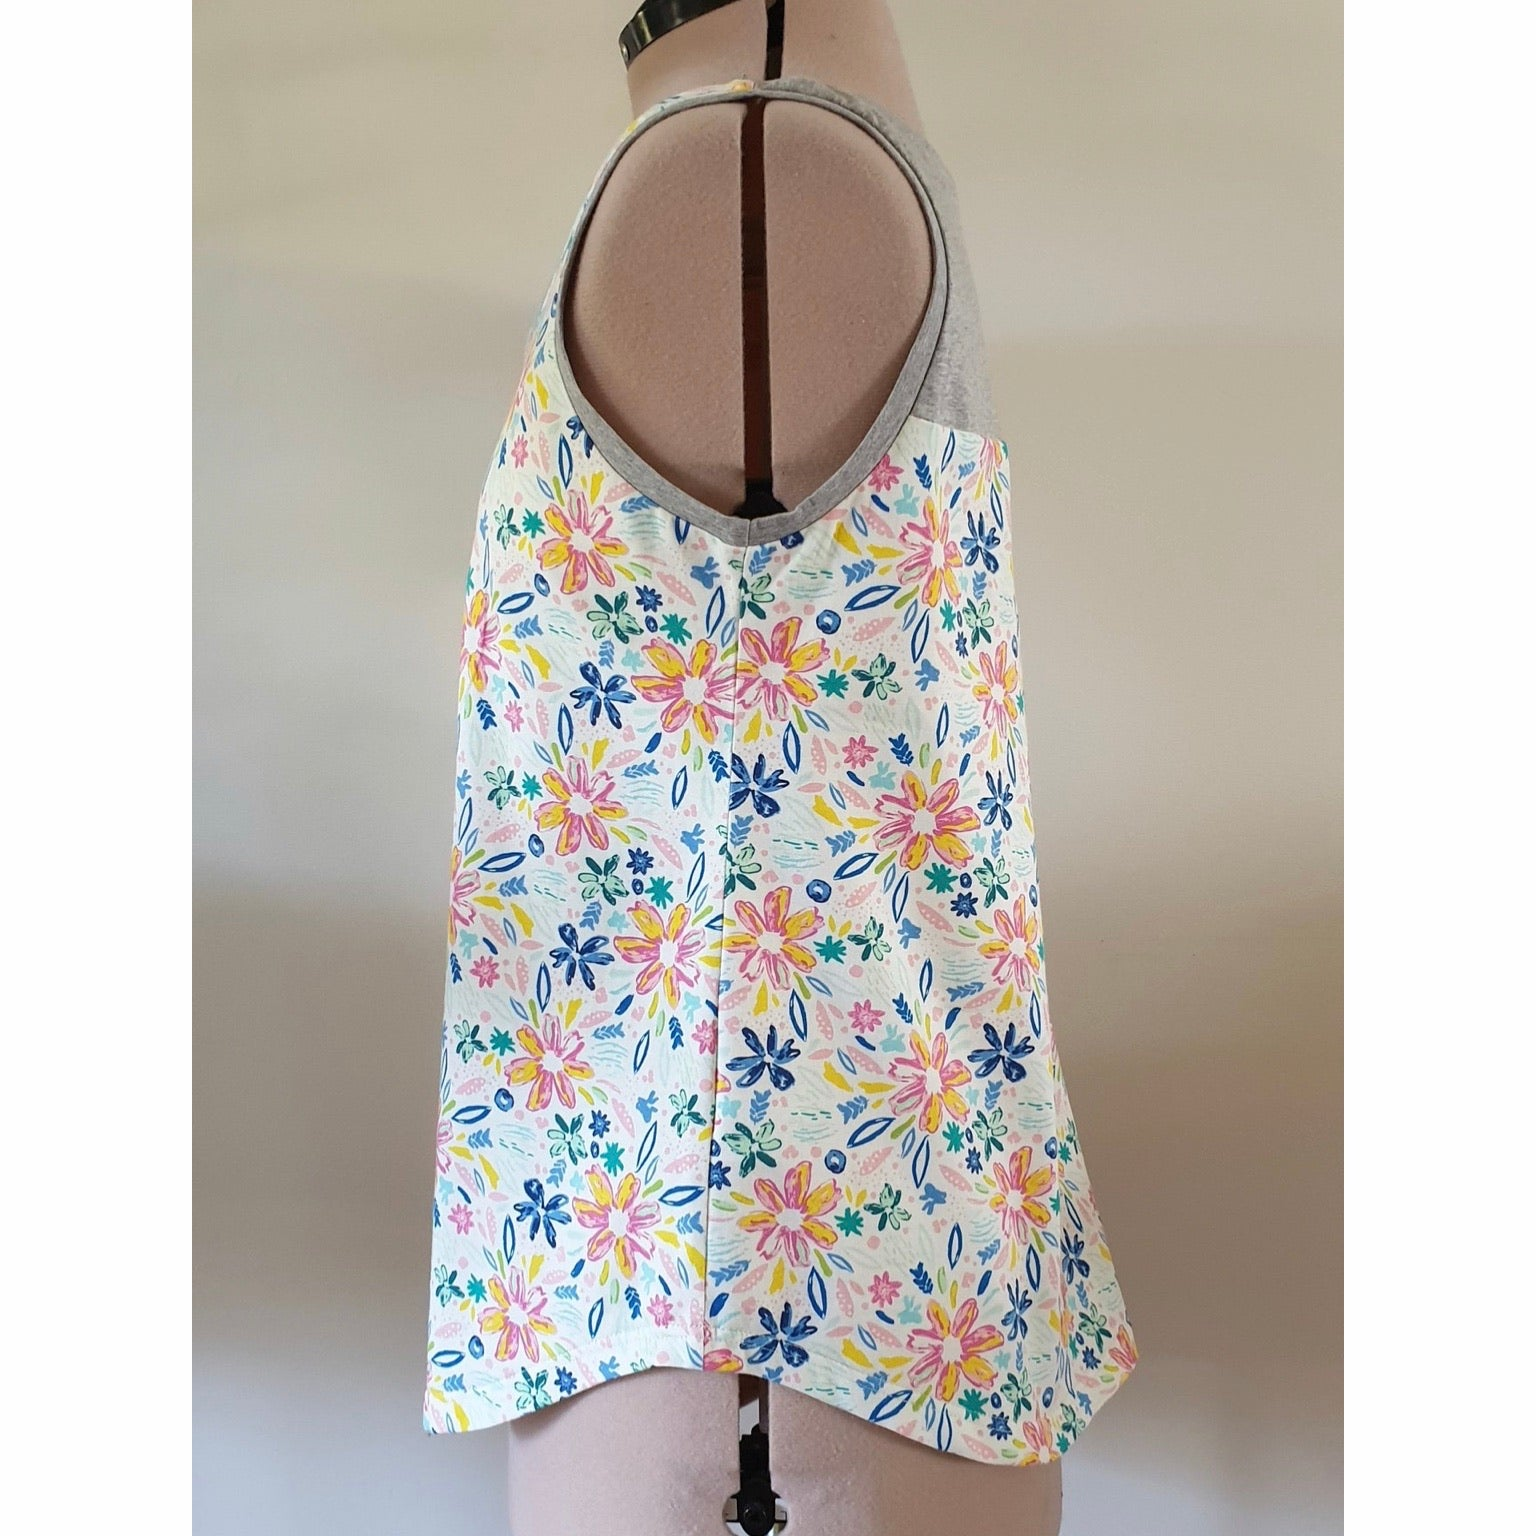 Women's All Rounder Singlet - Picnic *ON SALE*